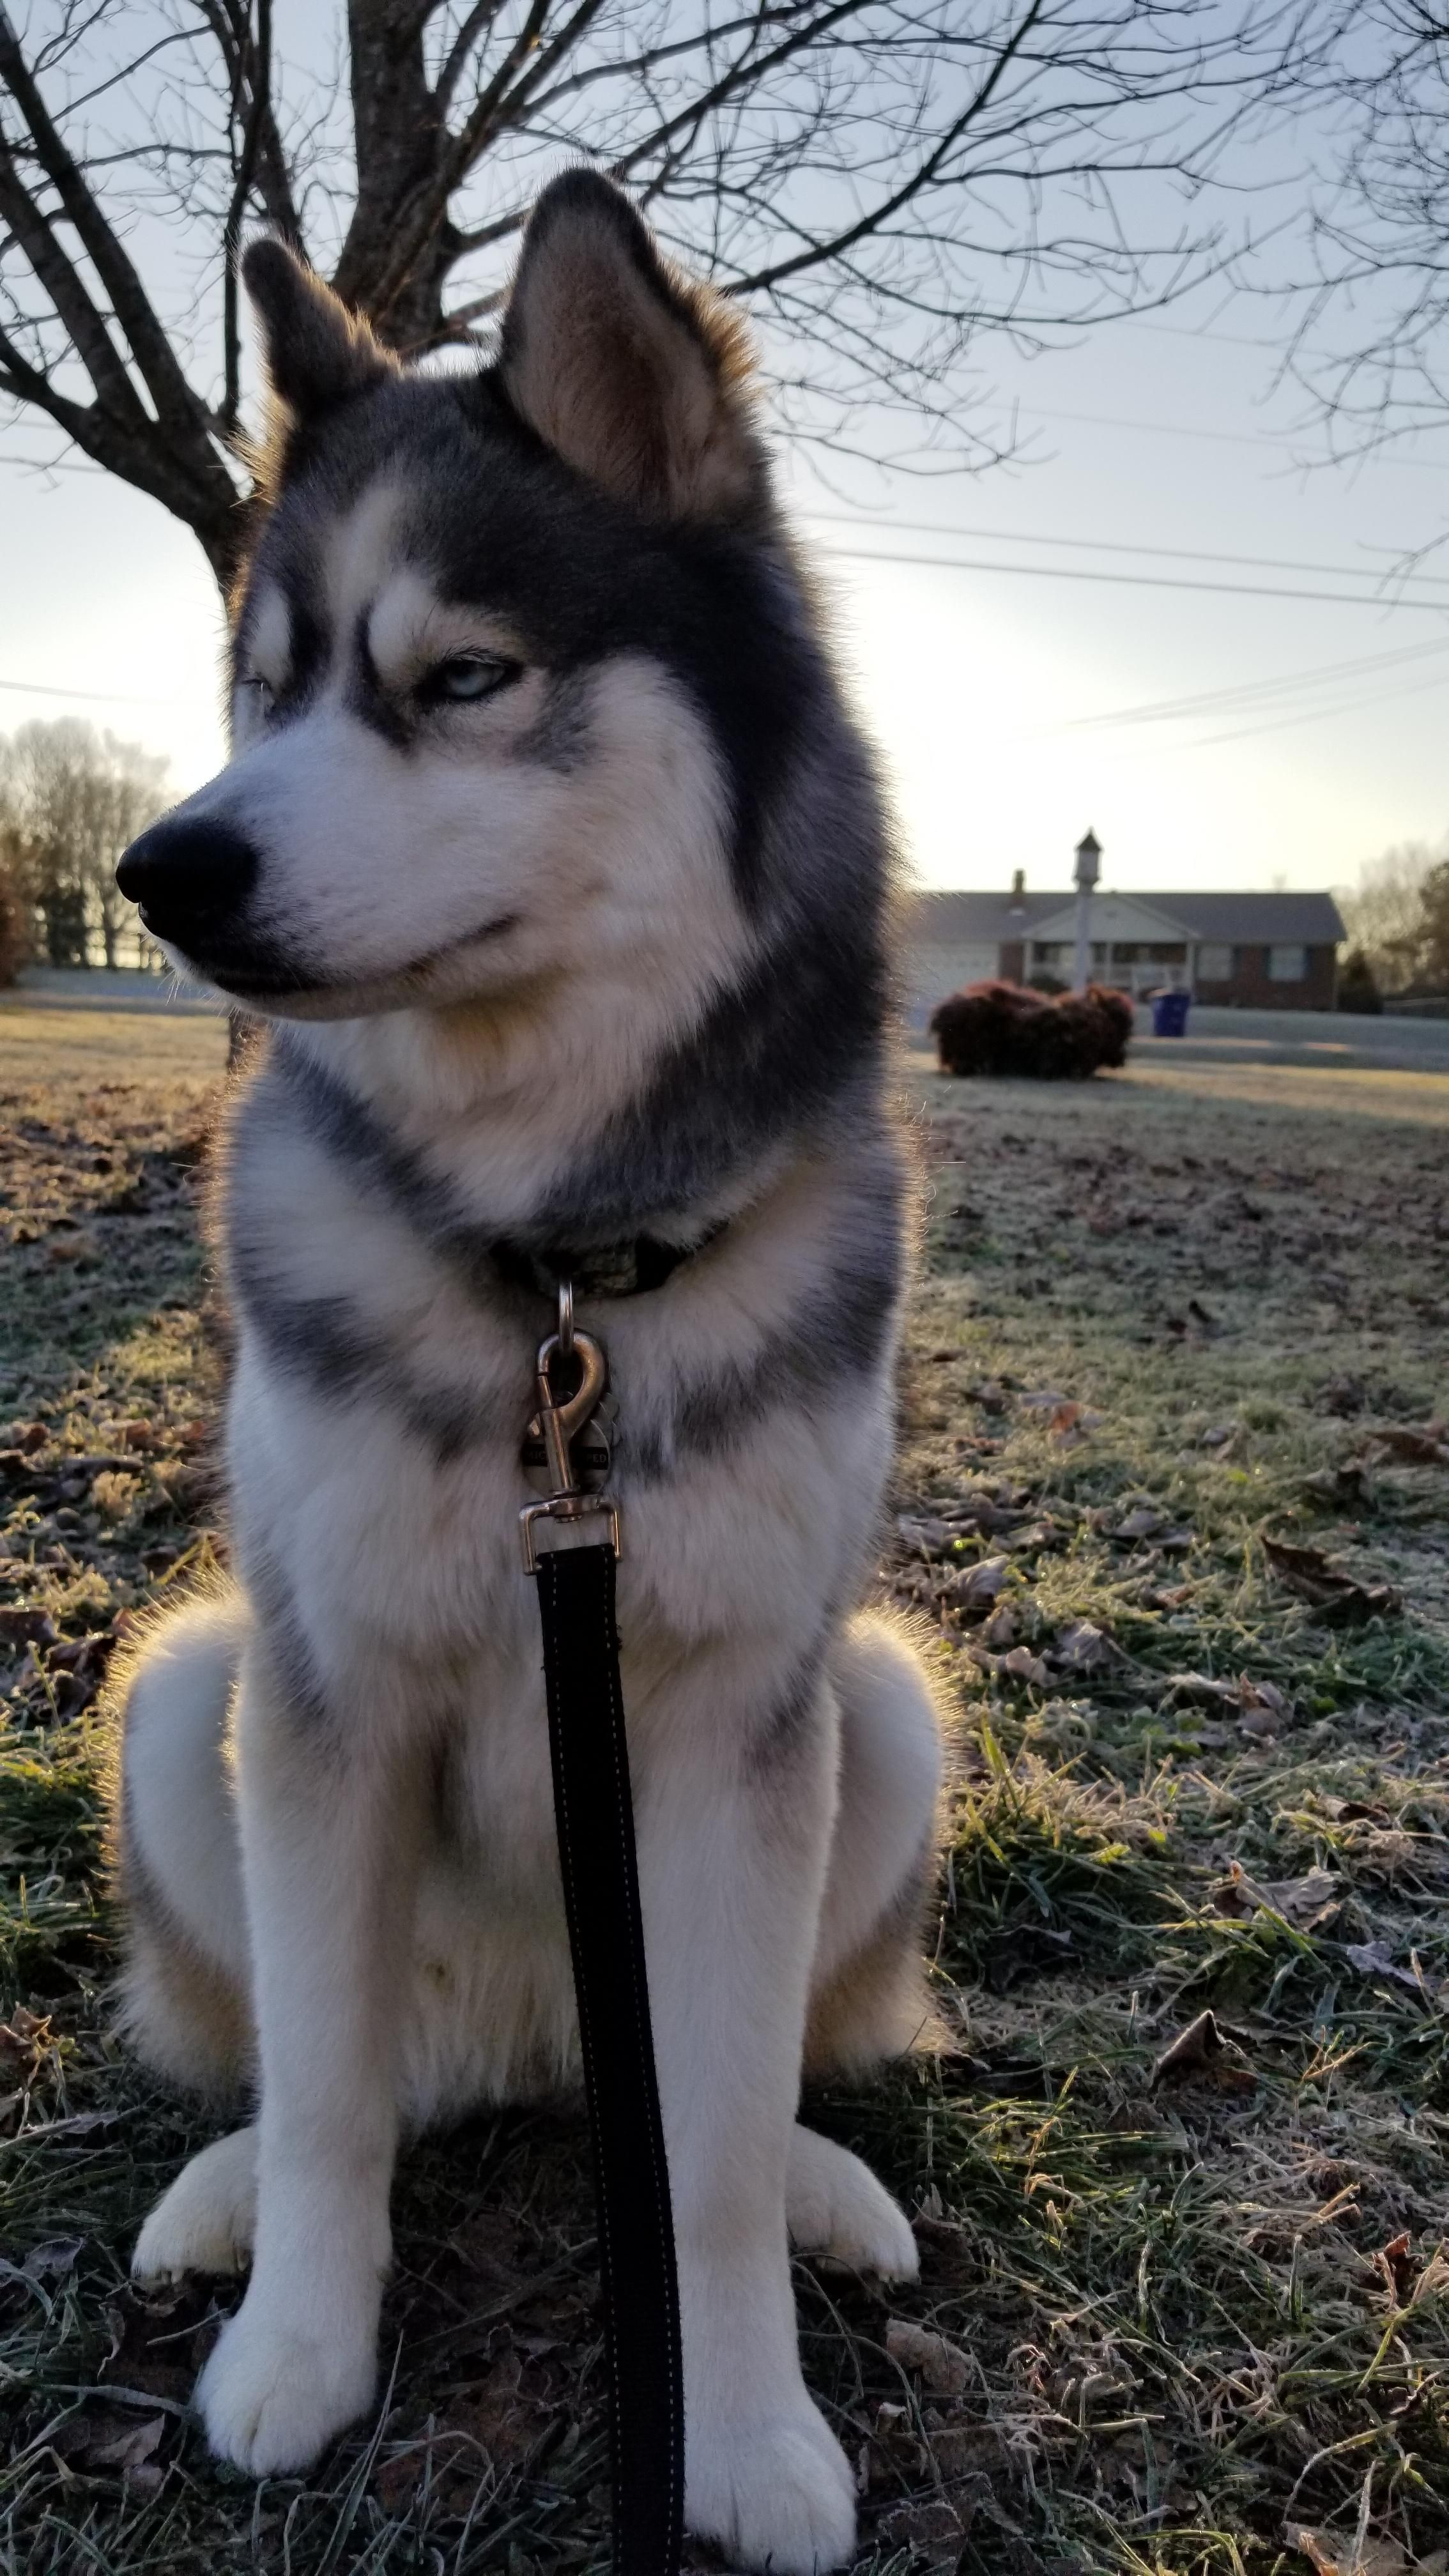 One Of The Hardest Days Of My Life I Ll Be Leaving This Majestic Beast Home While On Deployment I Ll Miss You Buddy Stay Jan Siberian Husky Husky Dogs Husky From the popular instagram/facebook account @lifewithmalamutes and imgur lifewithmalamutes. siberian husky husky dogs husky